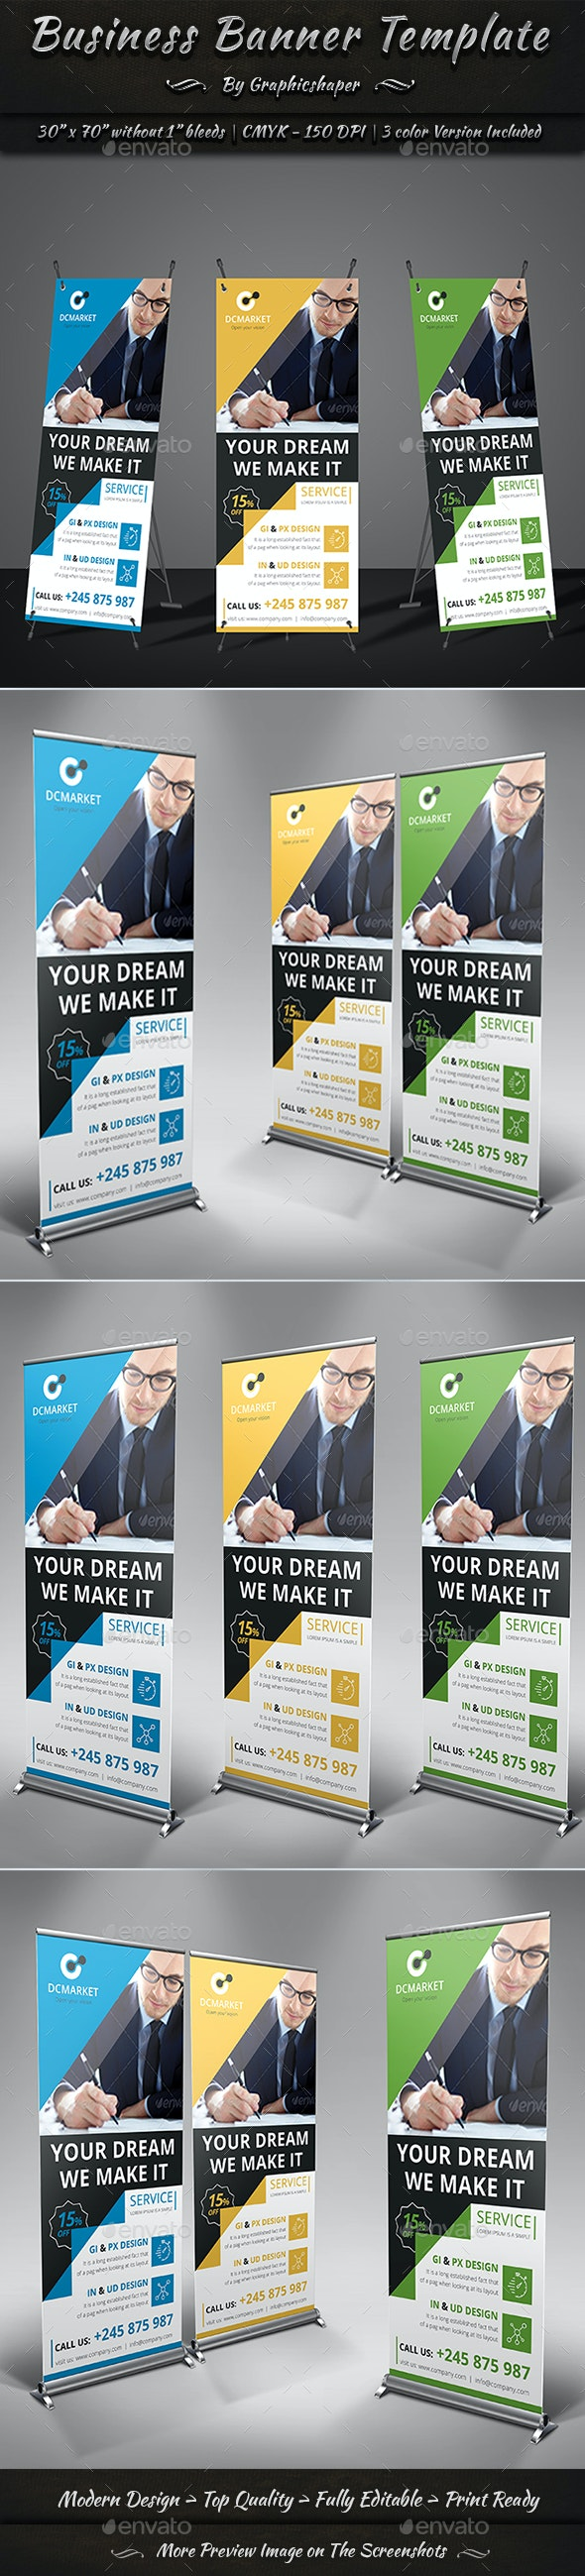 Business Banner Template - Signage Print Templates